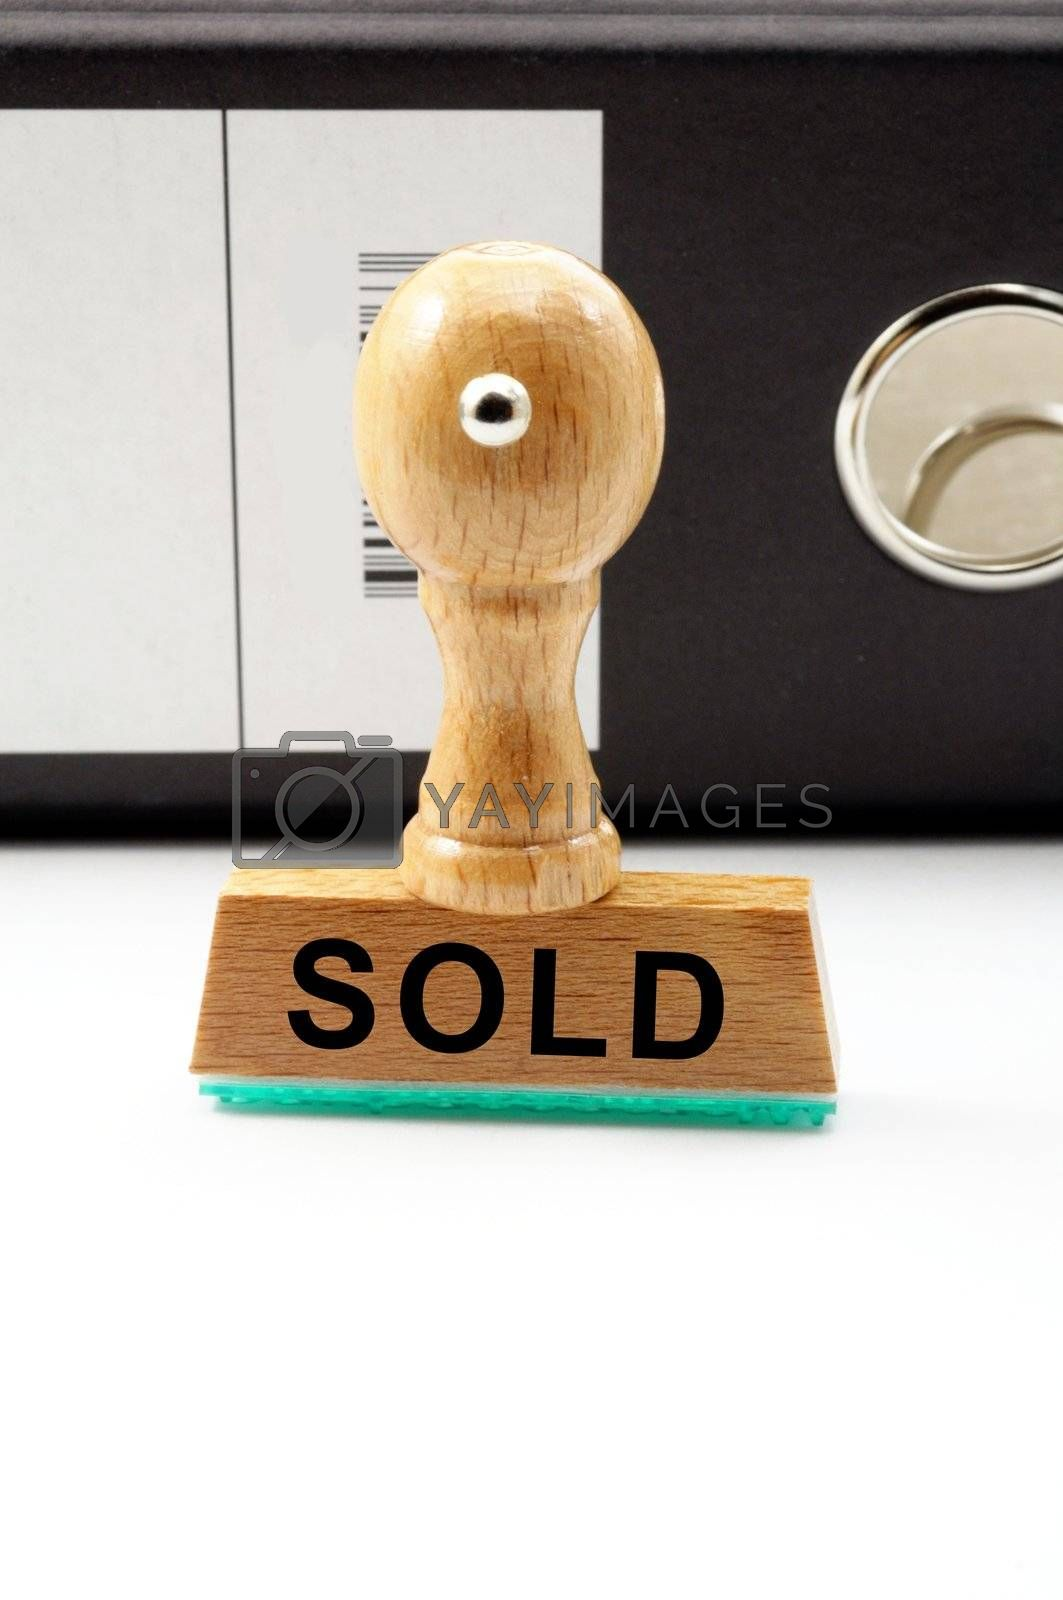 sold concept with stamp in business office showing commerce